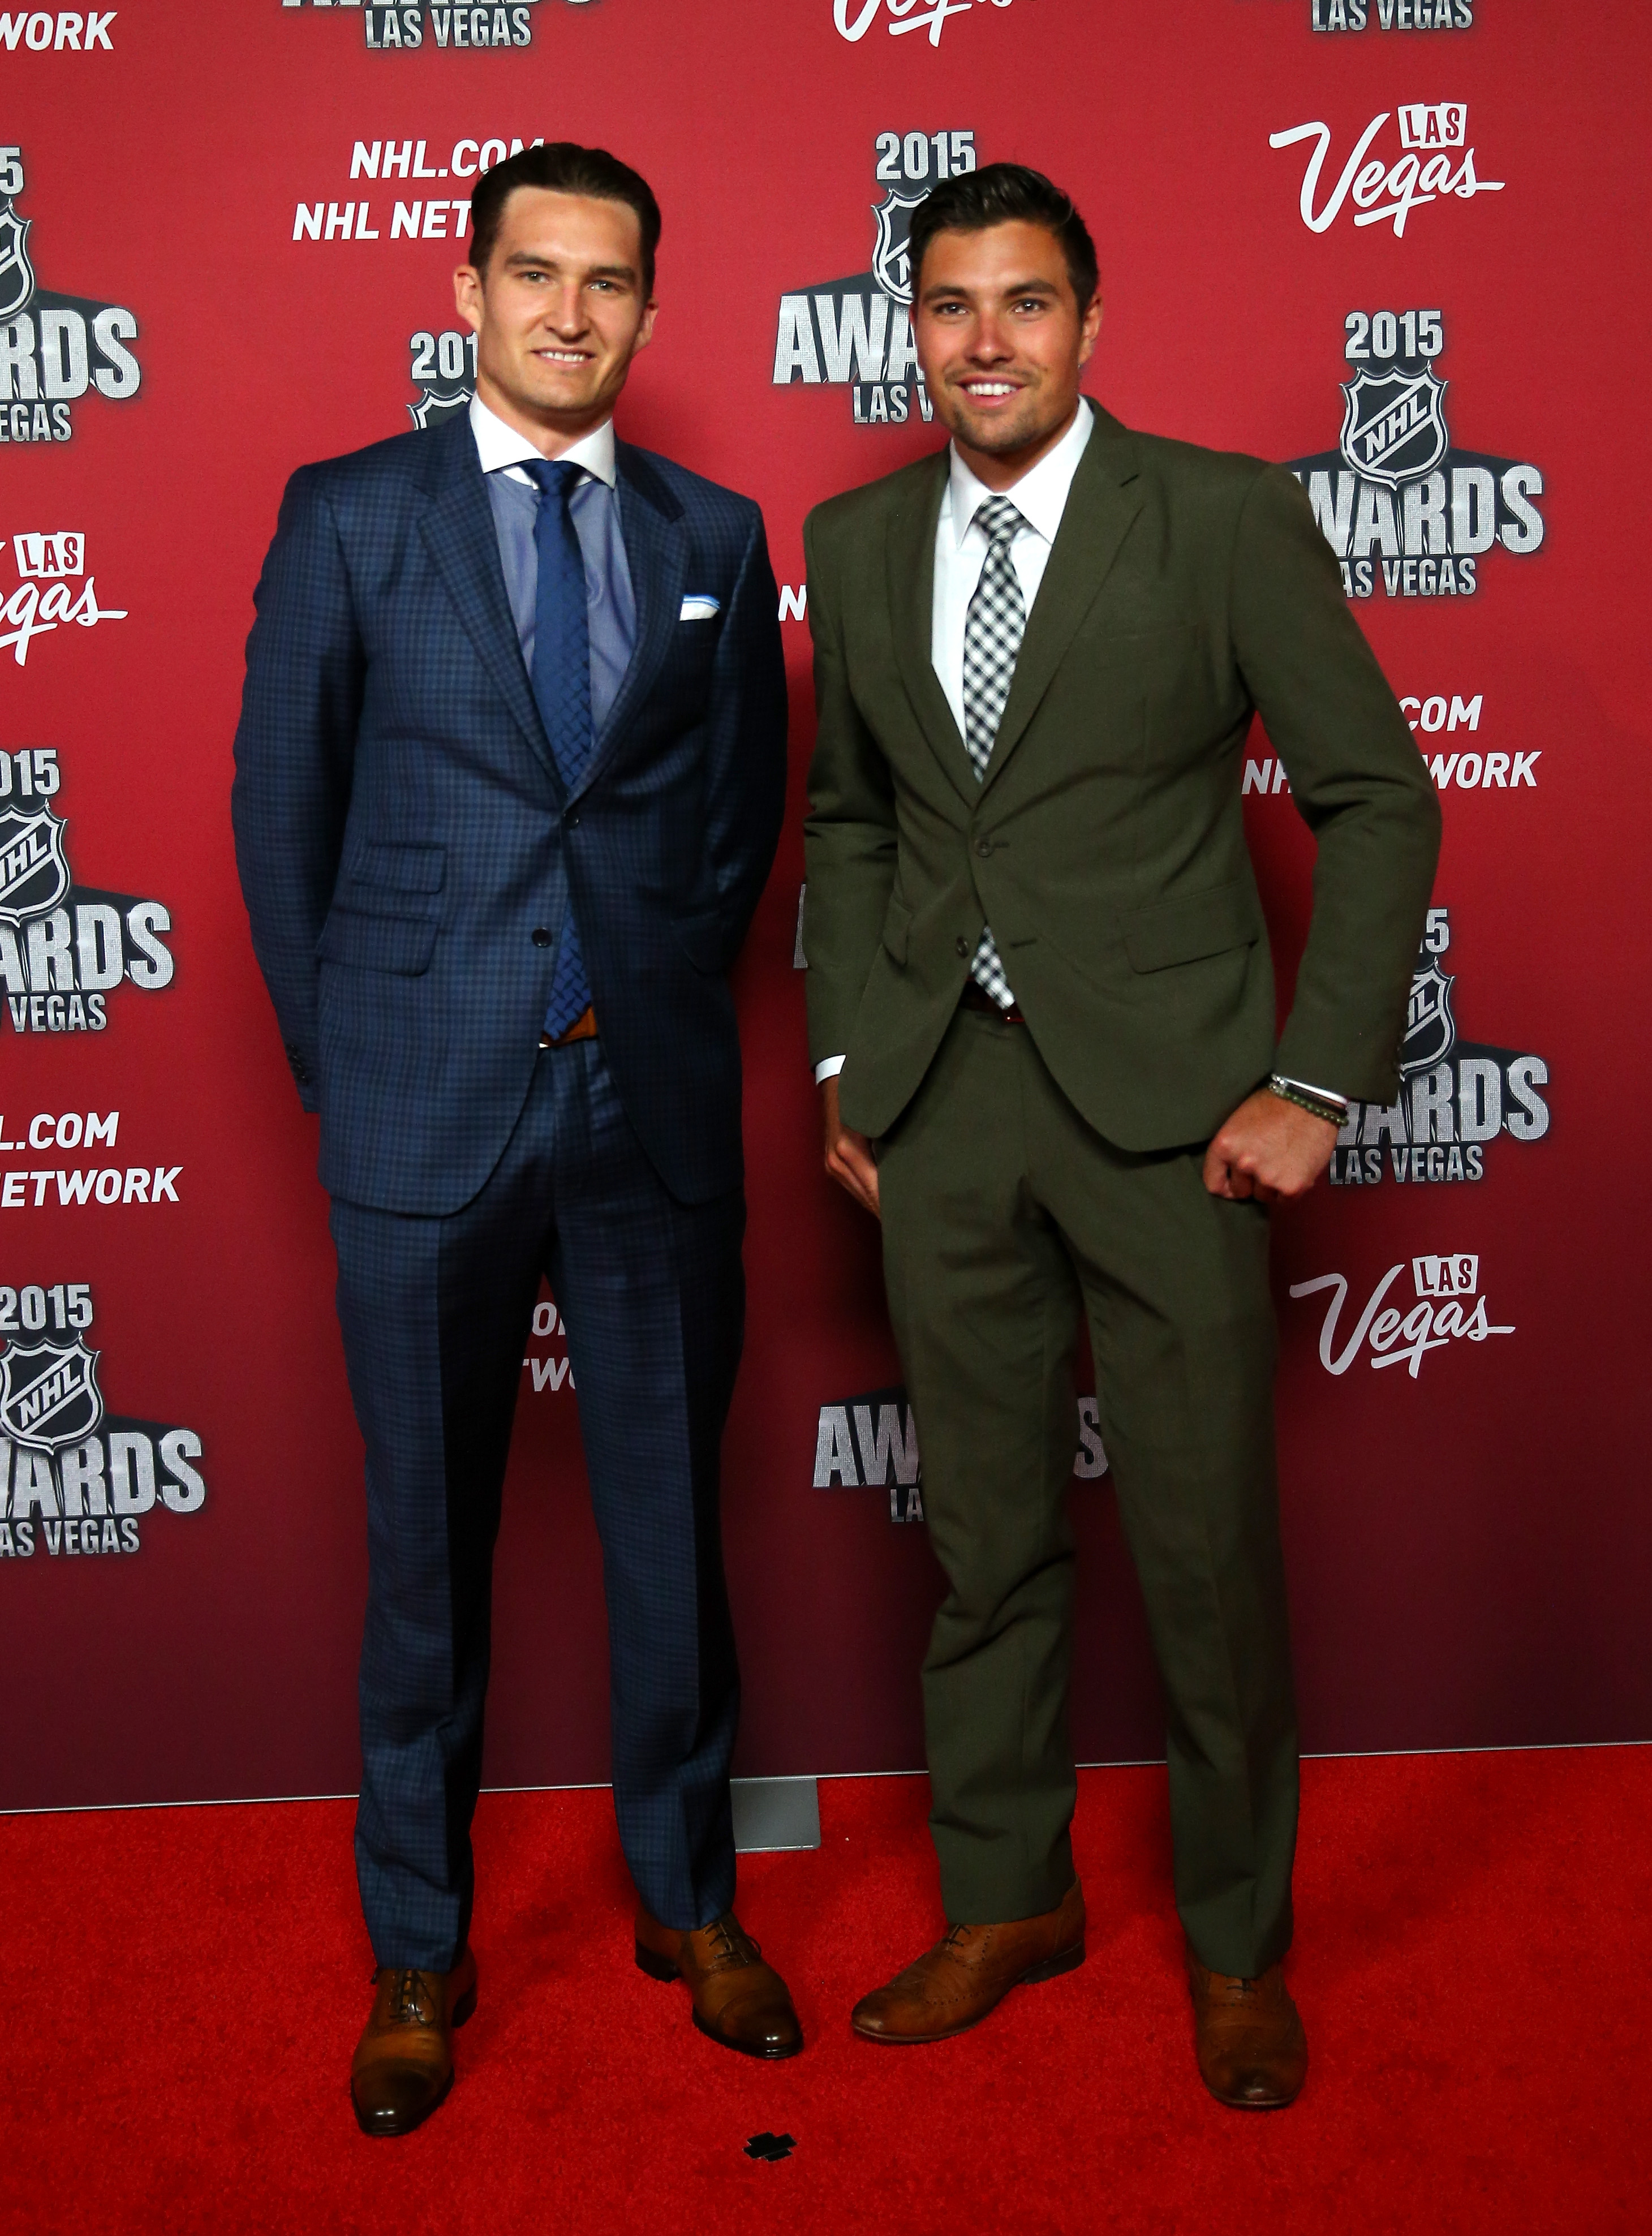 Taste in suits factors strongly into the Top 25 Under 25